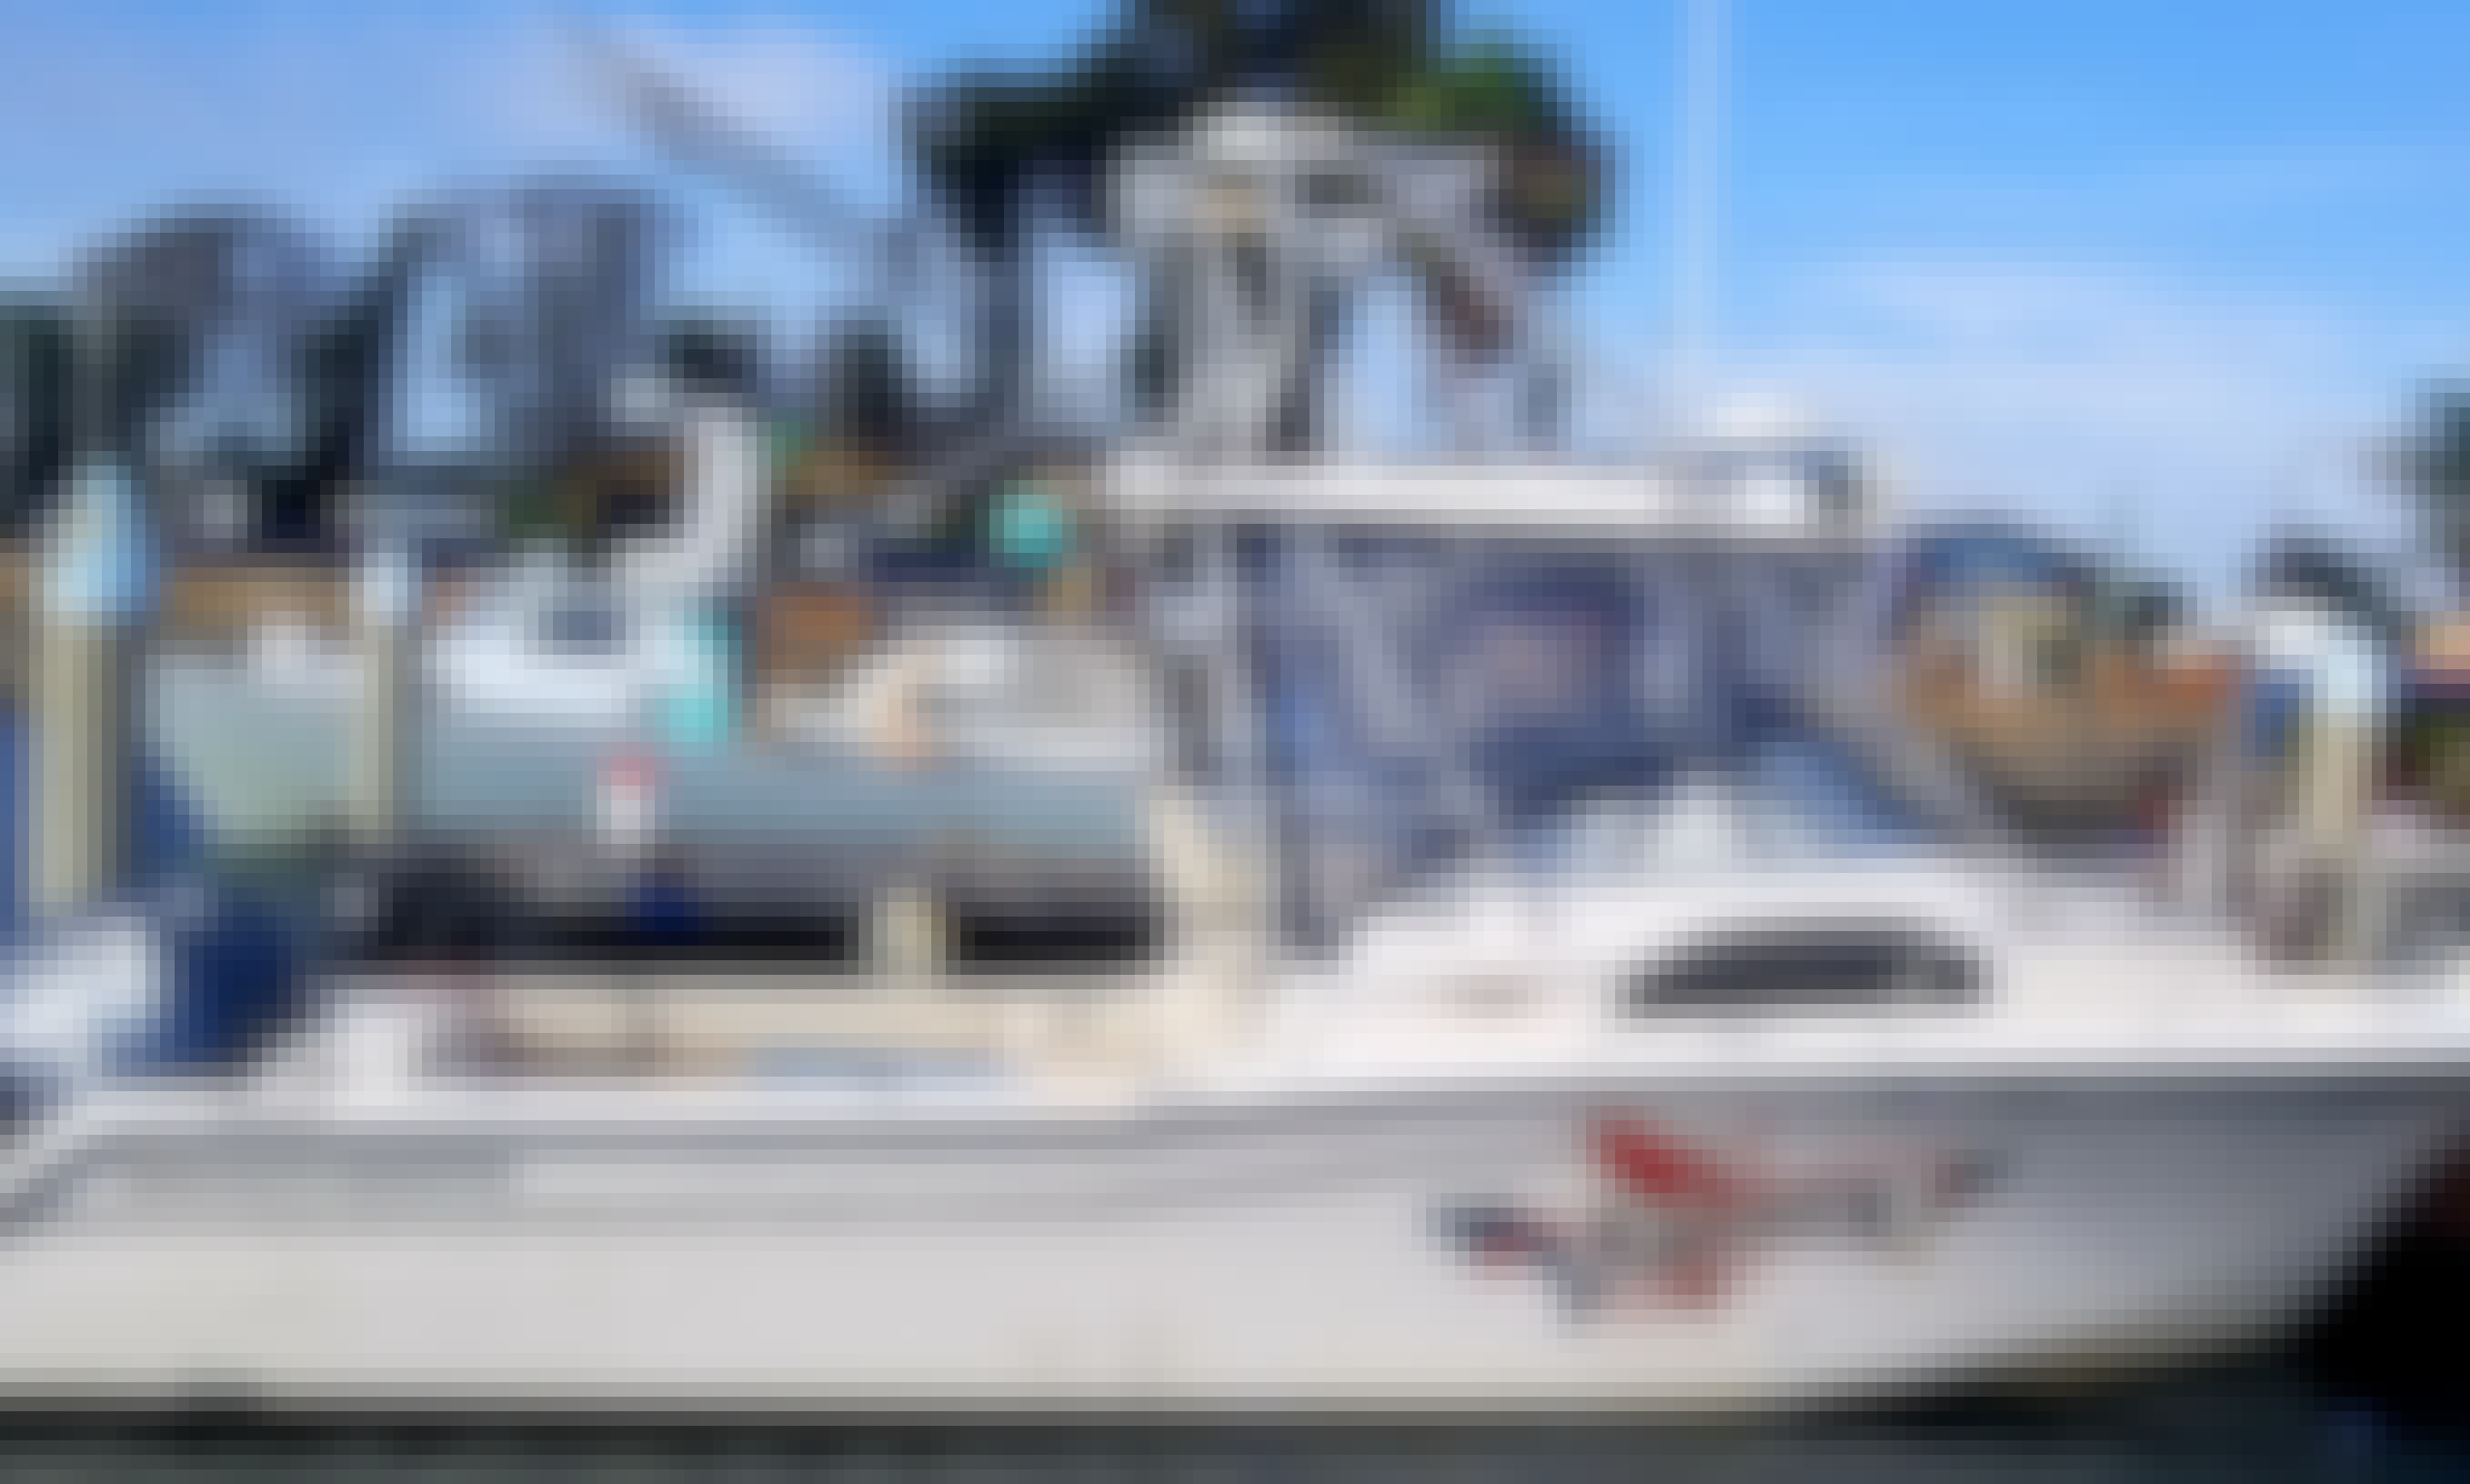 Cruise the San Diego Coastline with 29' Grady White for up to 6 people